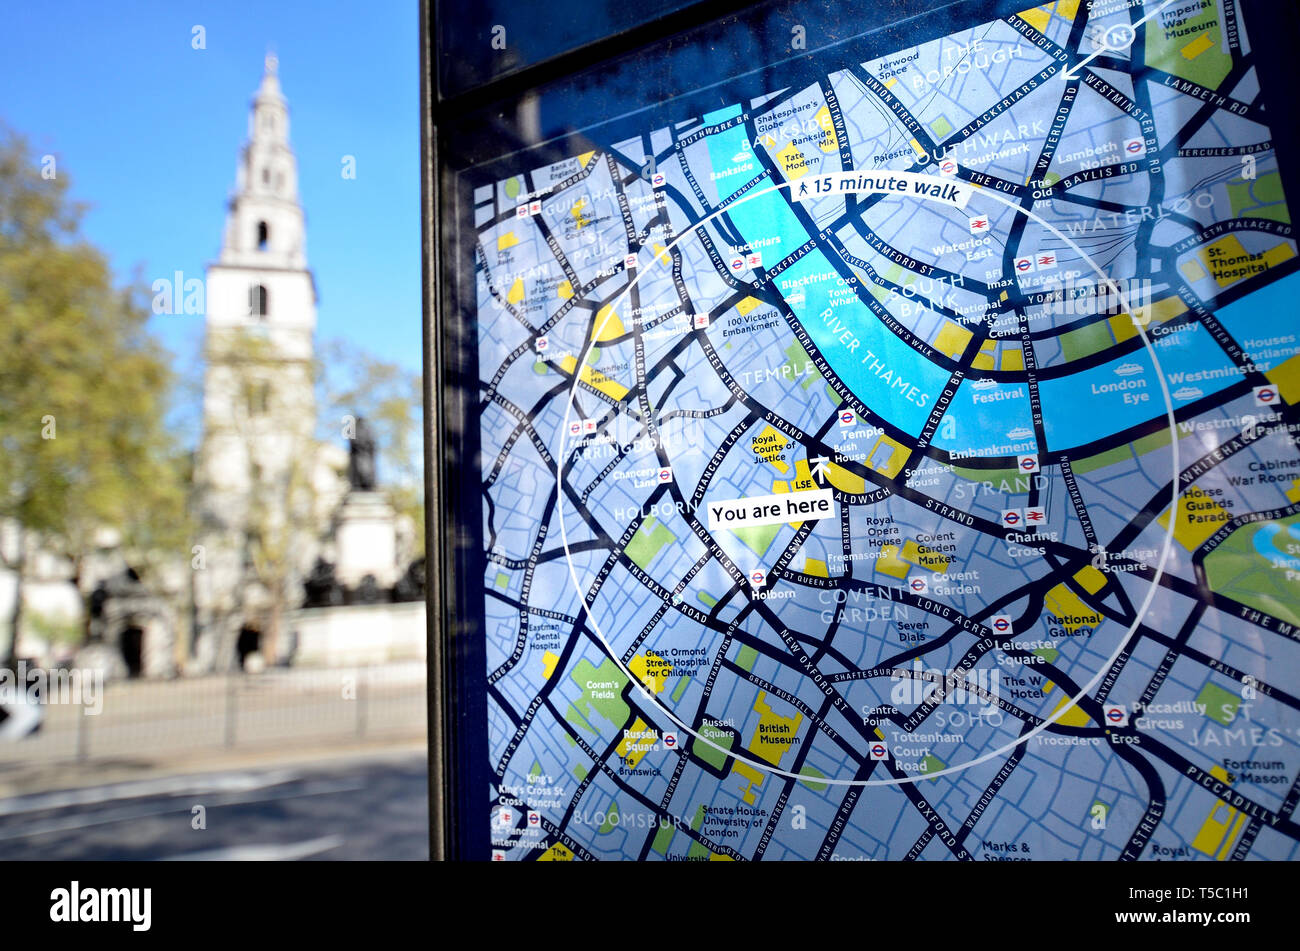 London, England, UK. Tourist information map 'You are Here' - Strand / Bush House - church of St Clement Danes in the background - Stock Image